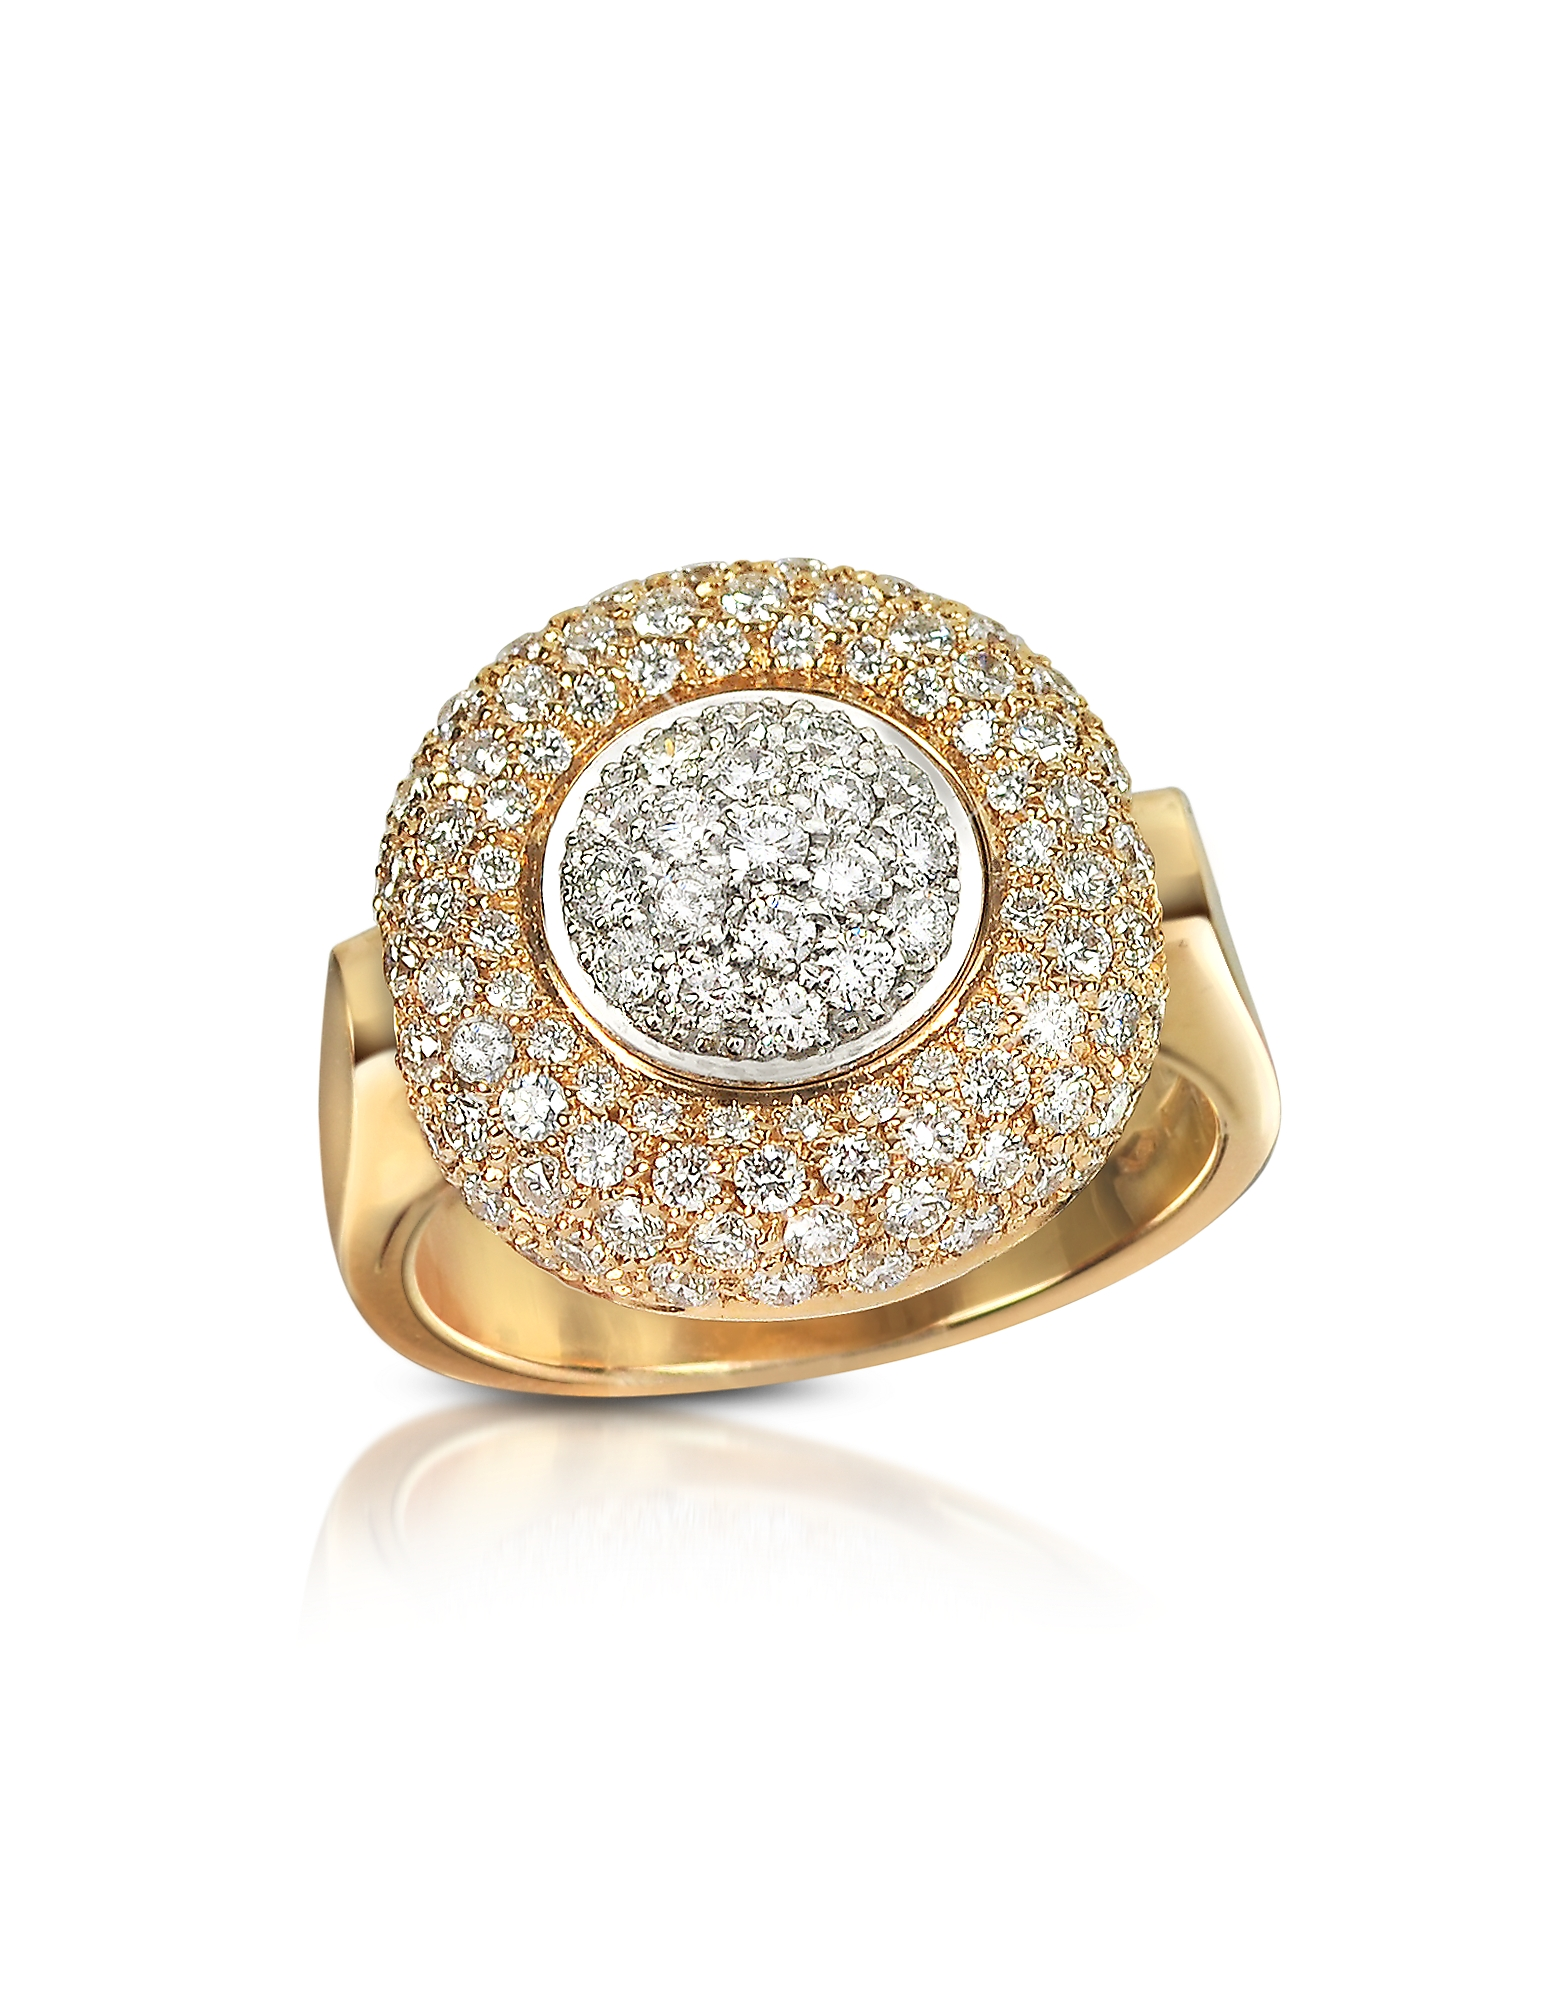 Forzieri Rings, 1.49 ct Diamond Pave 18K Gold Ring